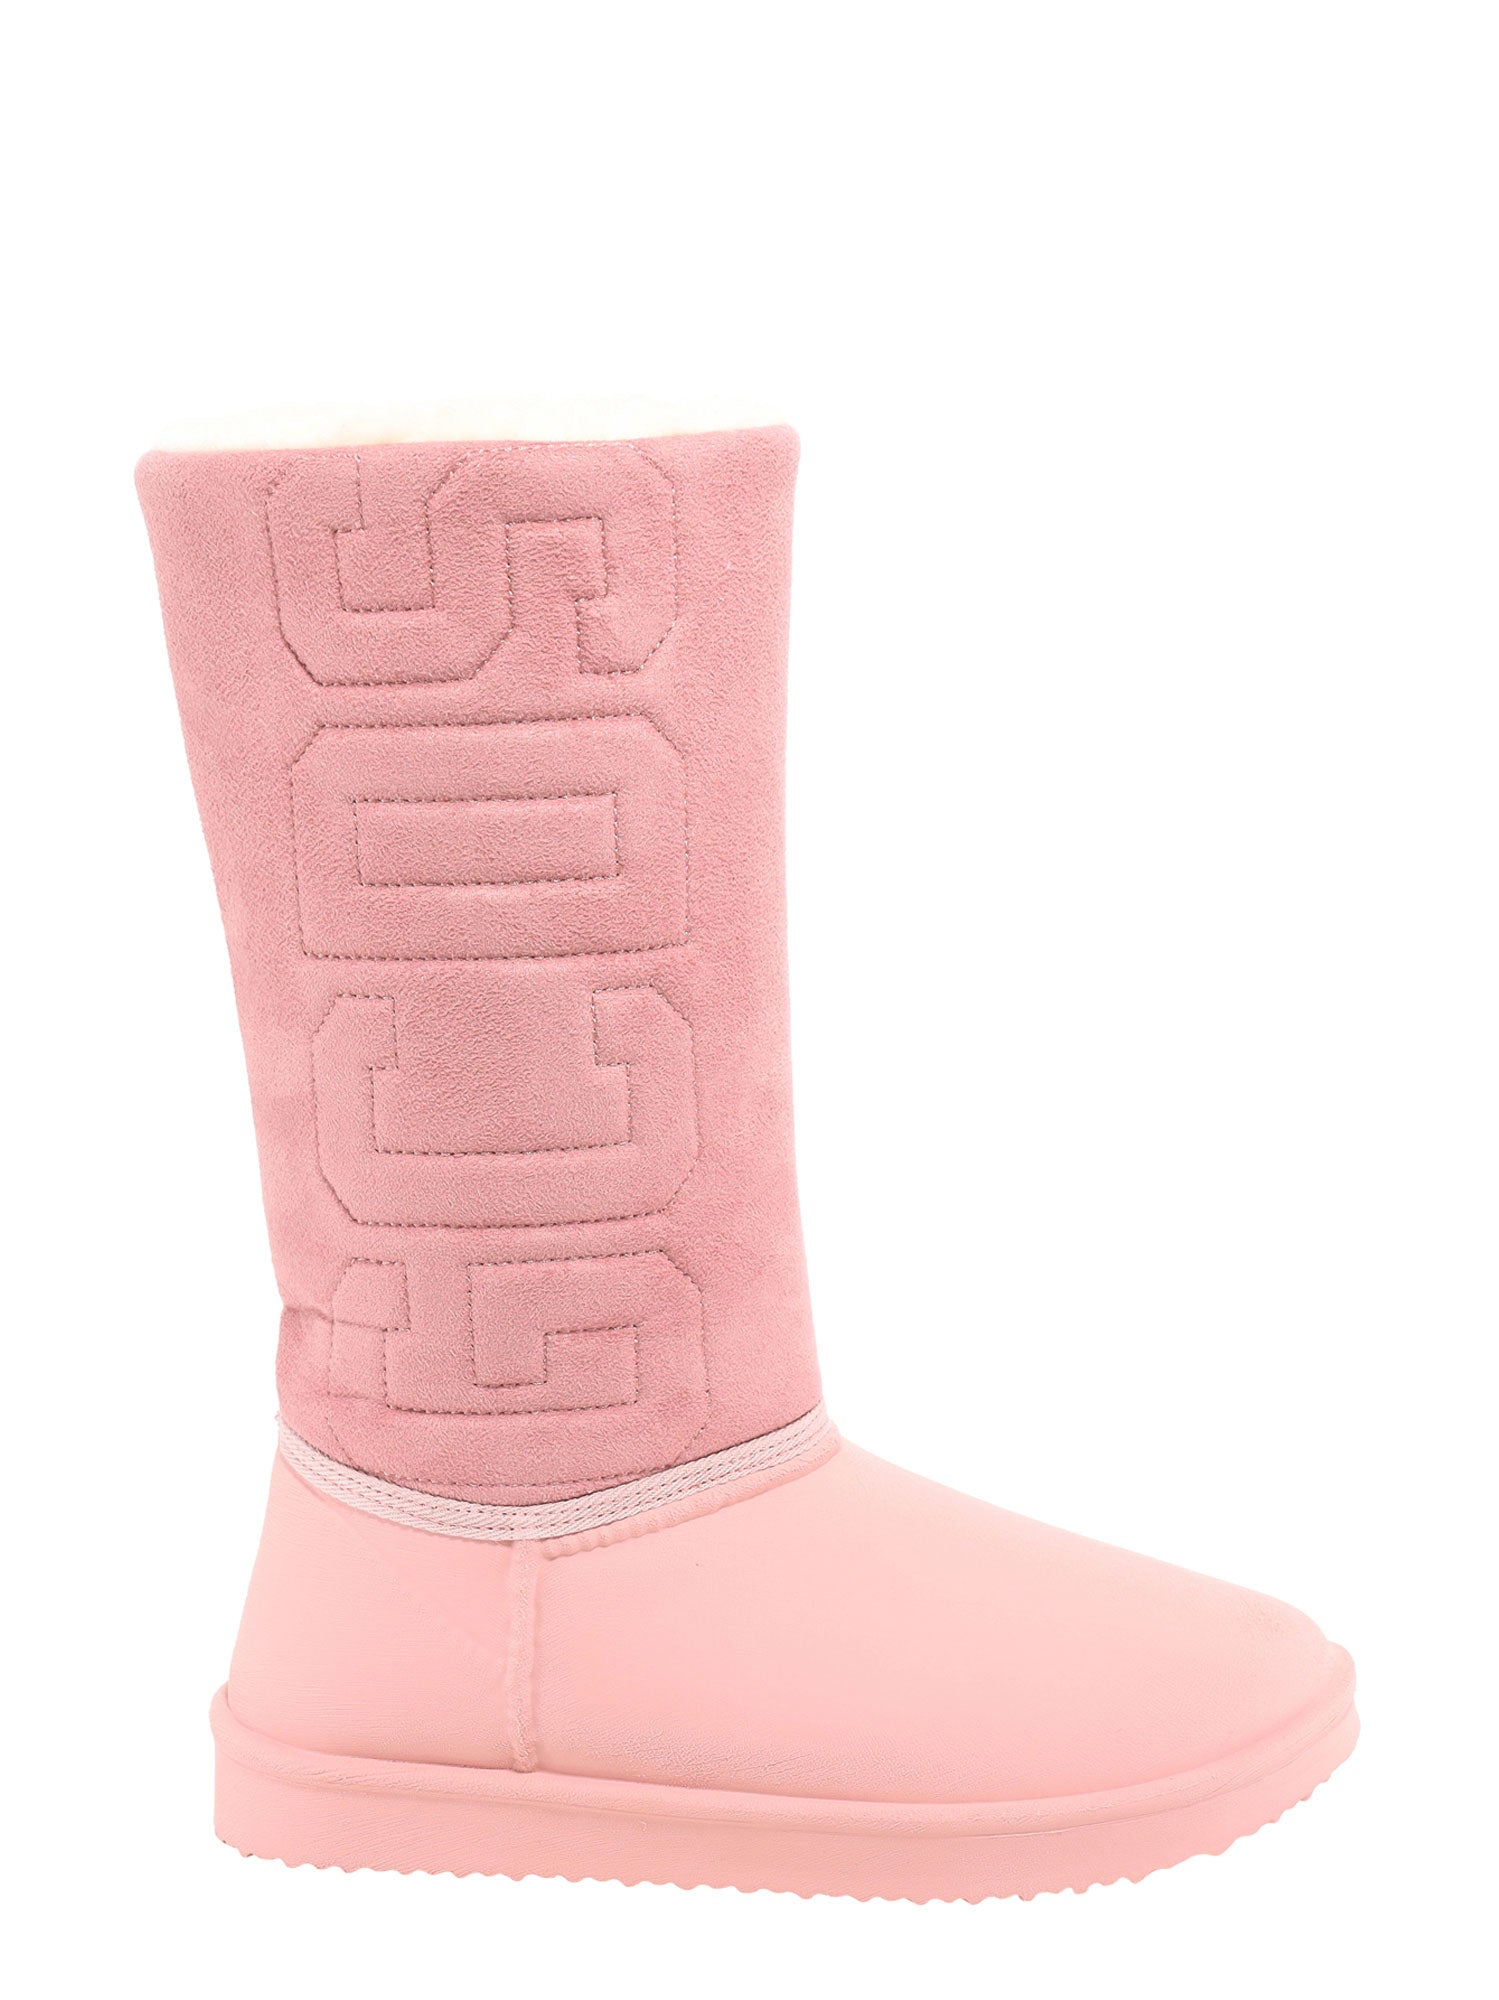 Gcds GCDS LOGO EMBROIDERED BOOTS